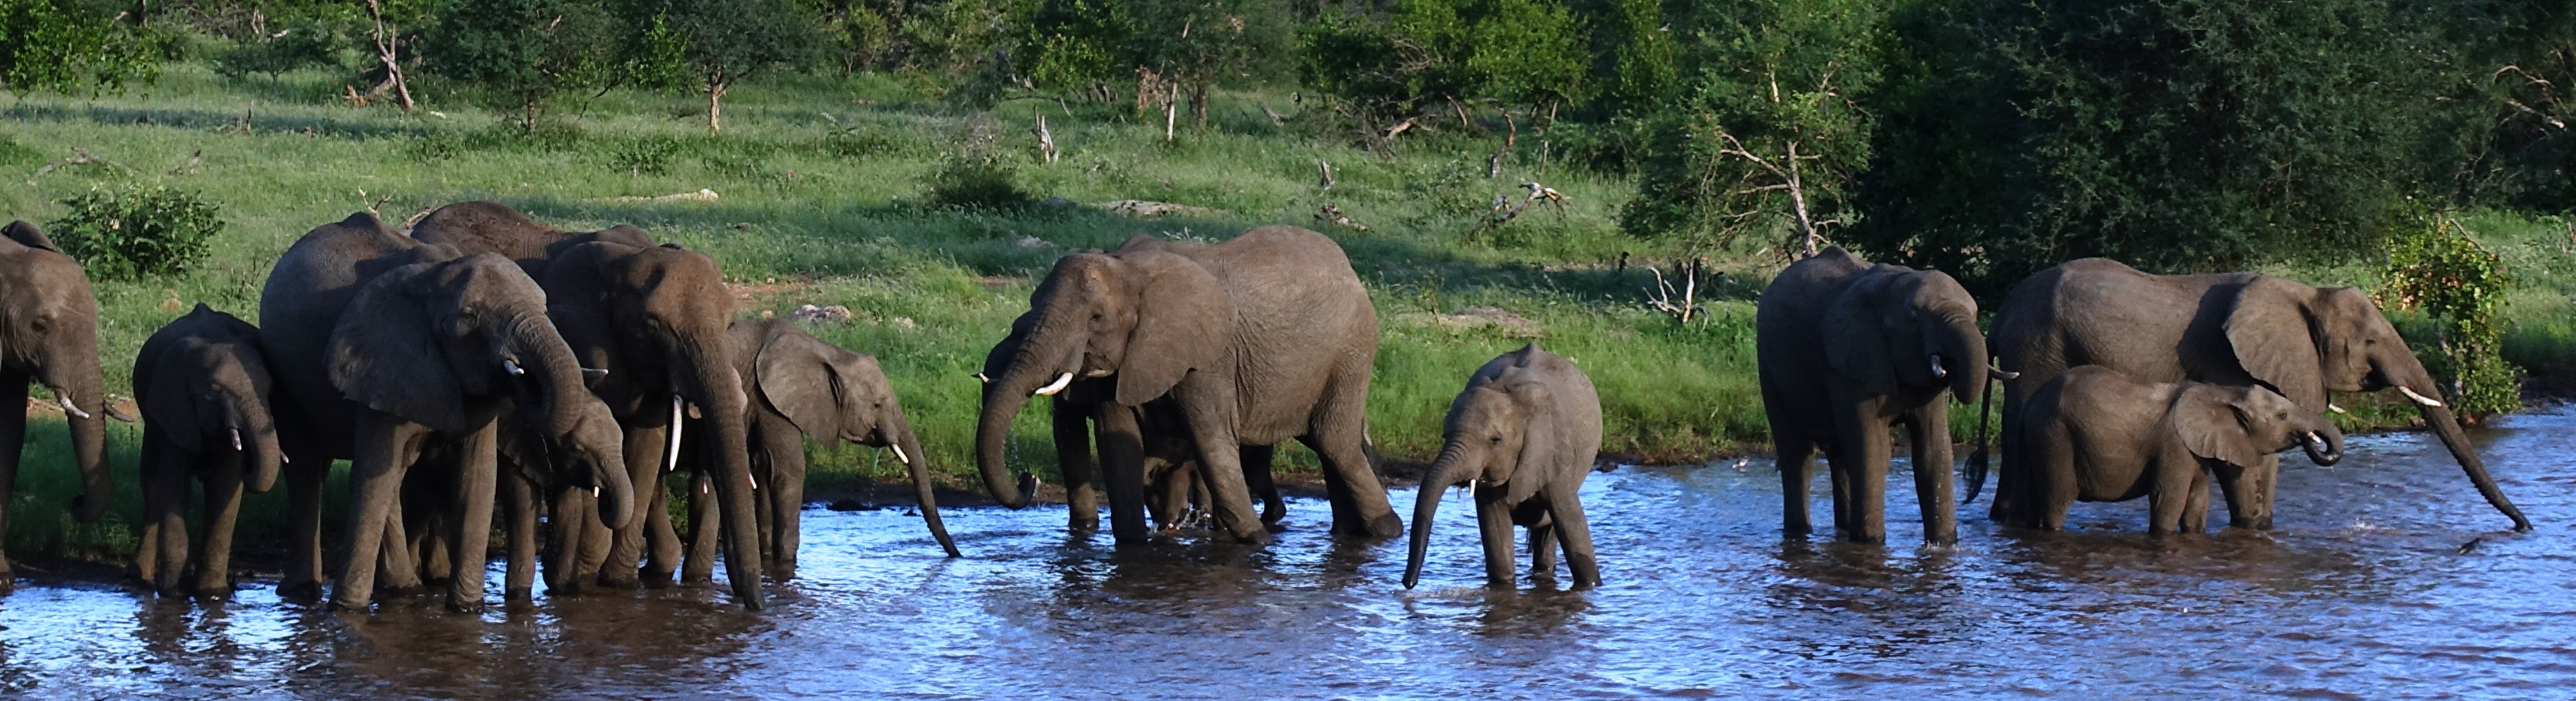 South African Golf Tour 2019 - Elephants